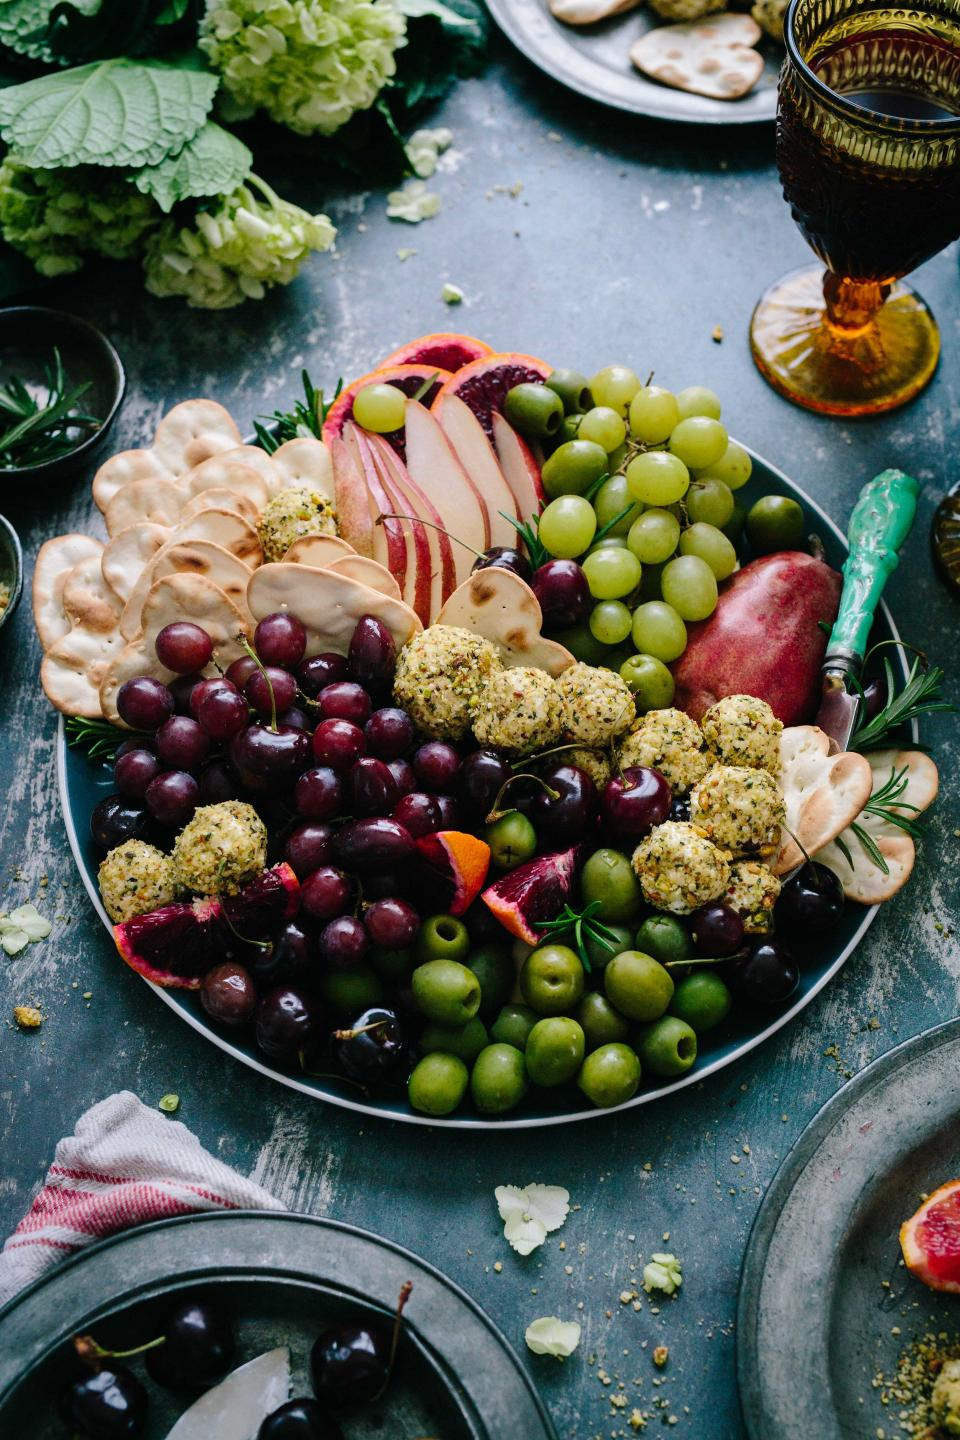 fruits healthy food grapes bowl biscuit glass apple slices rice snack cloth table vegetables